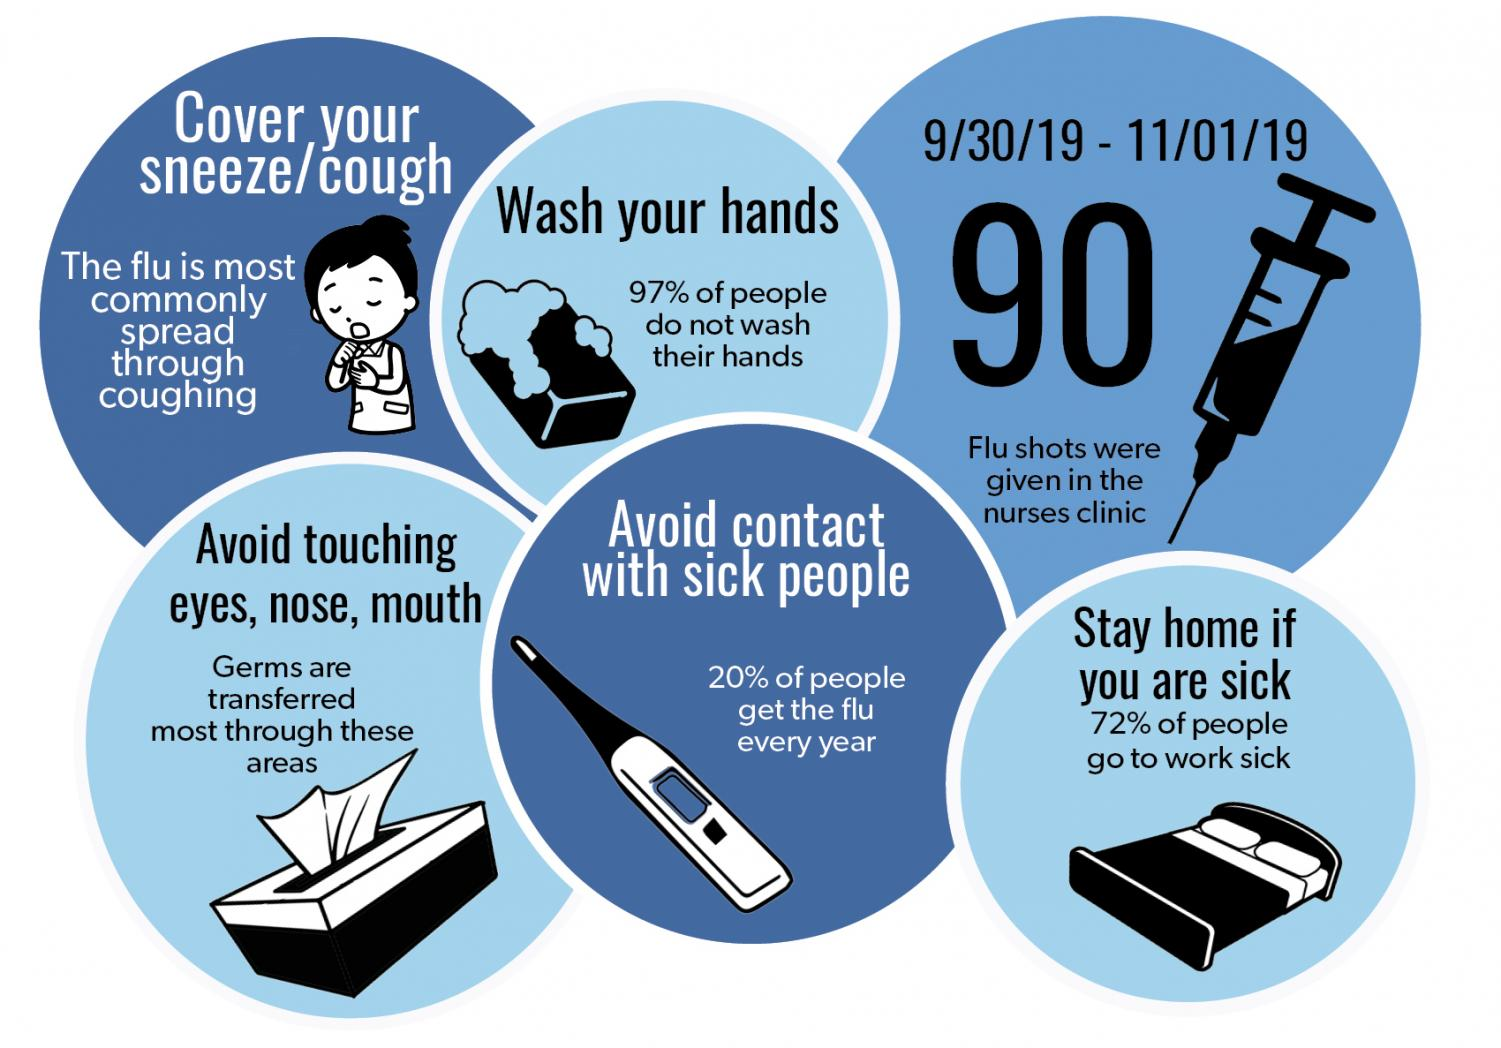 According to nurse practitioner Amber Hunziker, good hygiene and routine hand washing can aid in the prevention of the flu spreading.